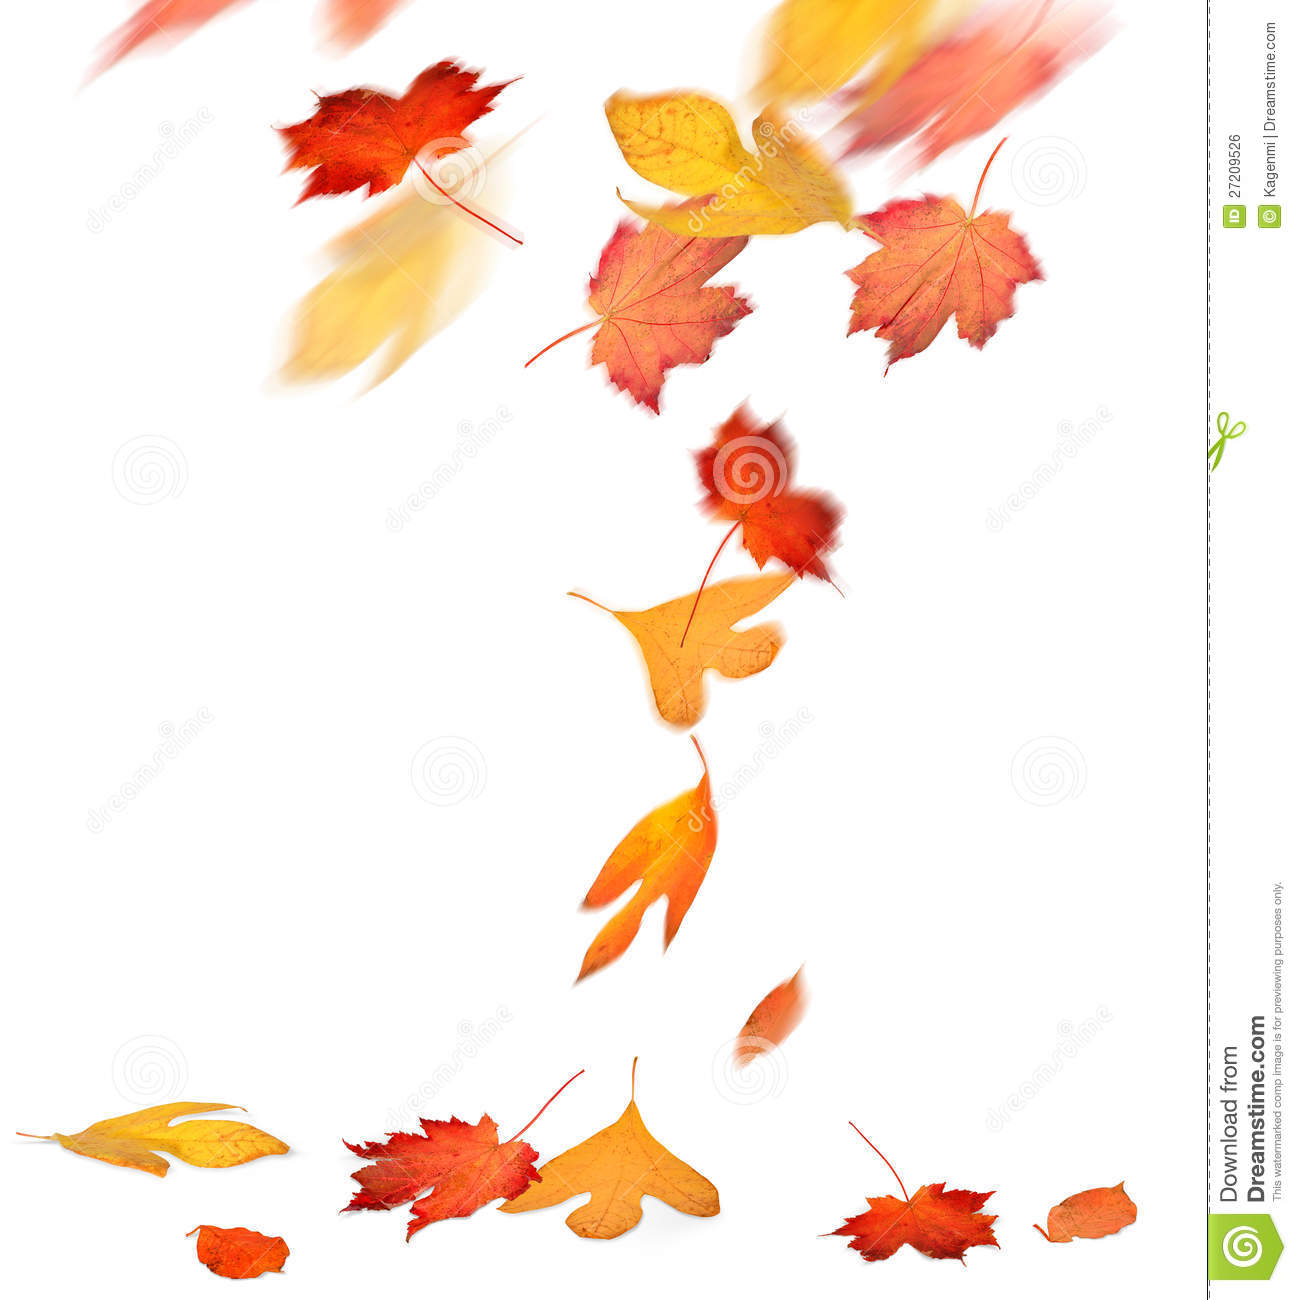 Fall Leaves Blowing Clipart.